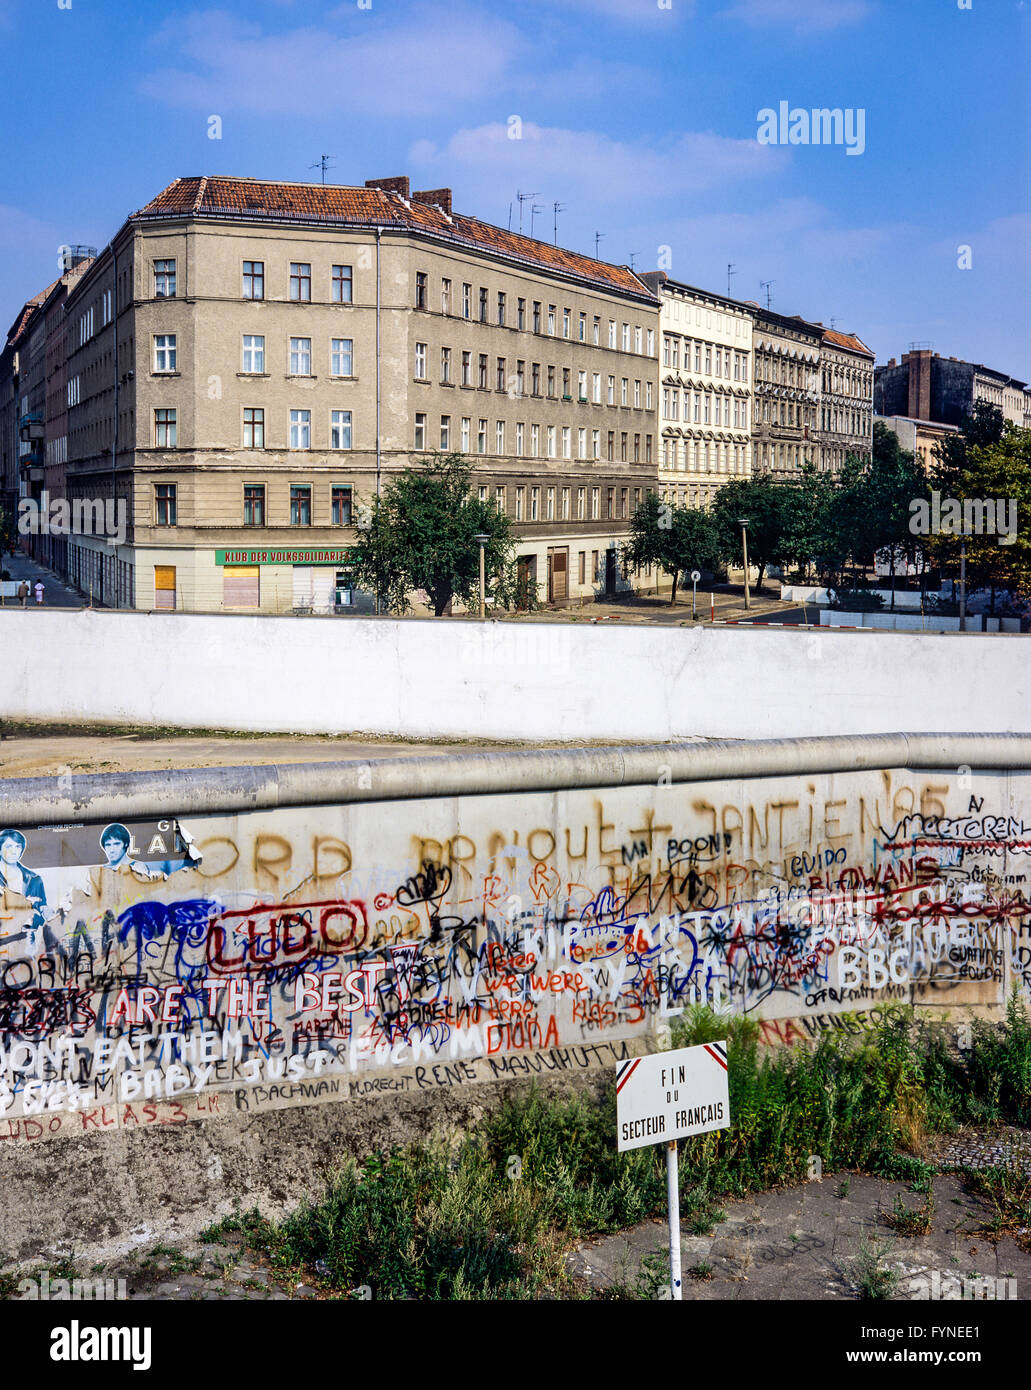 August 1986, Berlin Wall, warning sign for end of French sector, death strip, Bernauer Strasse street, Wedding, - Stock Image